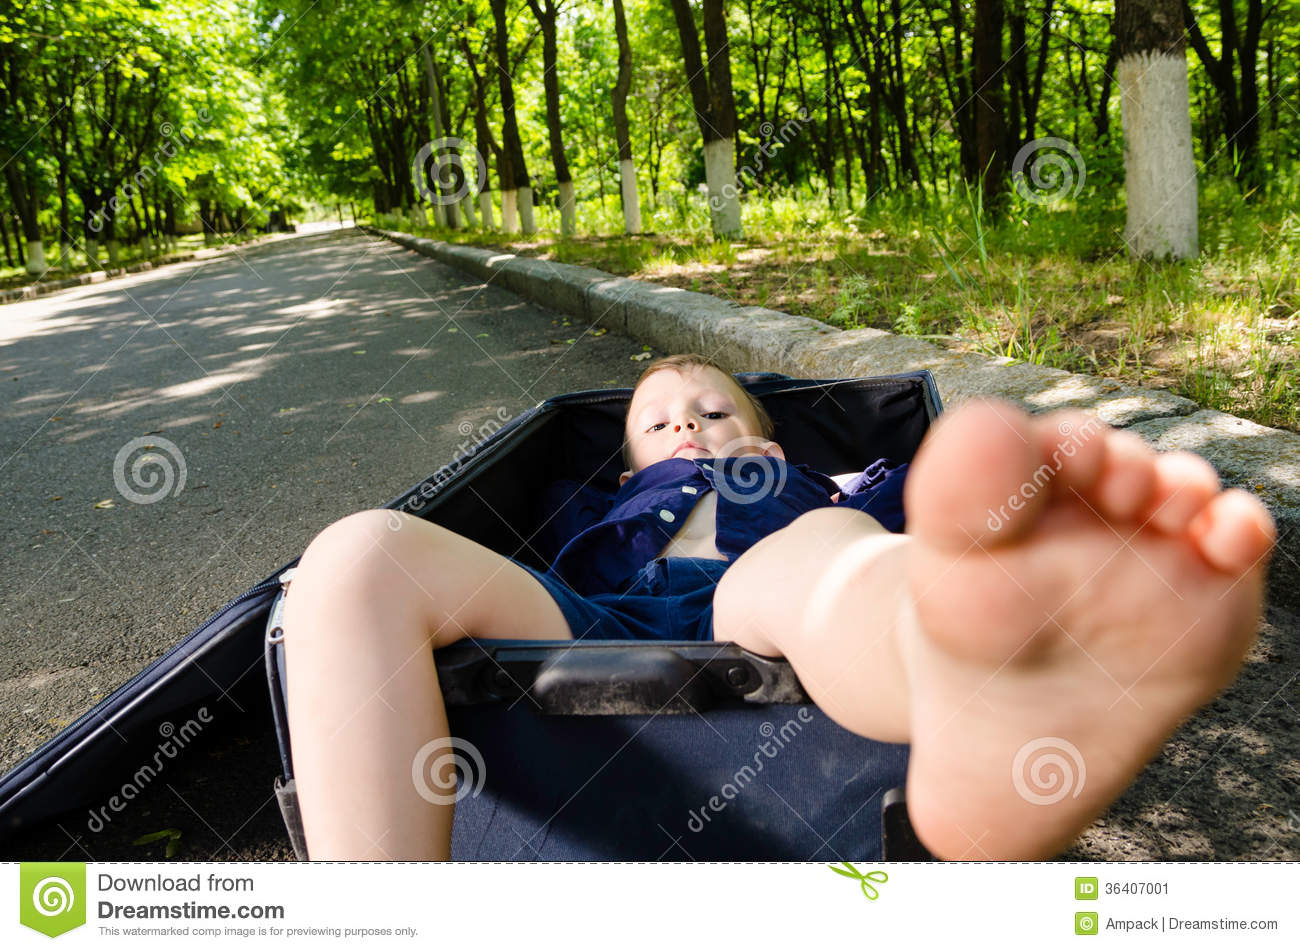 Barefoot Little Boy Inside A Suitcase Stock Image - Image: 36407001